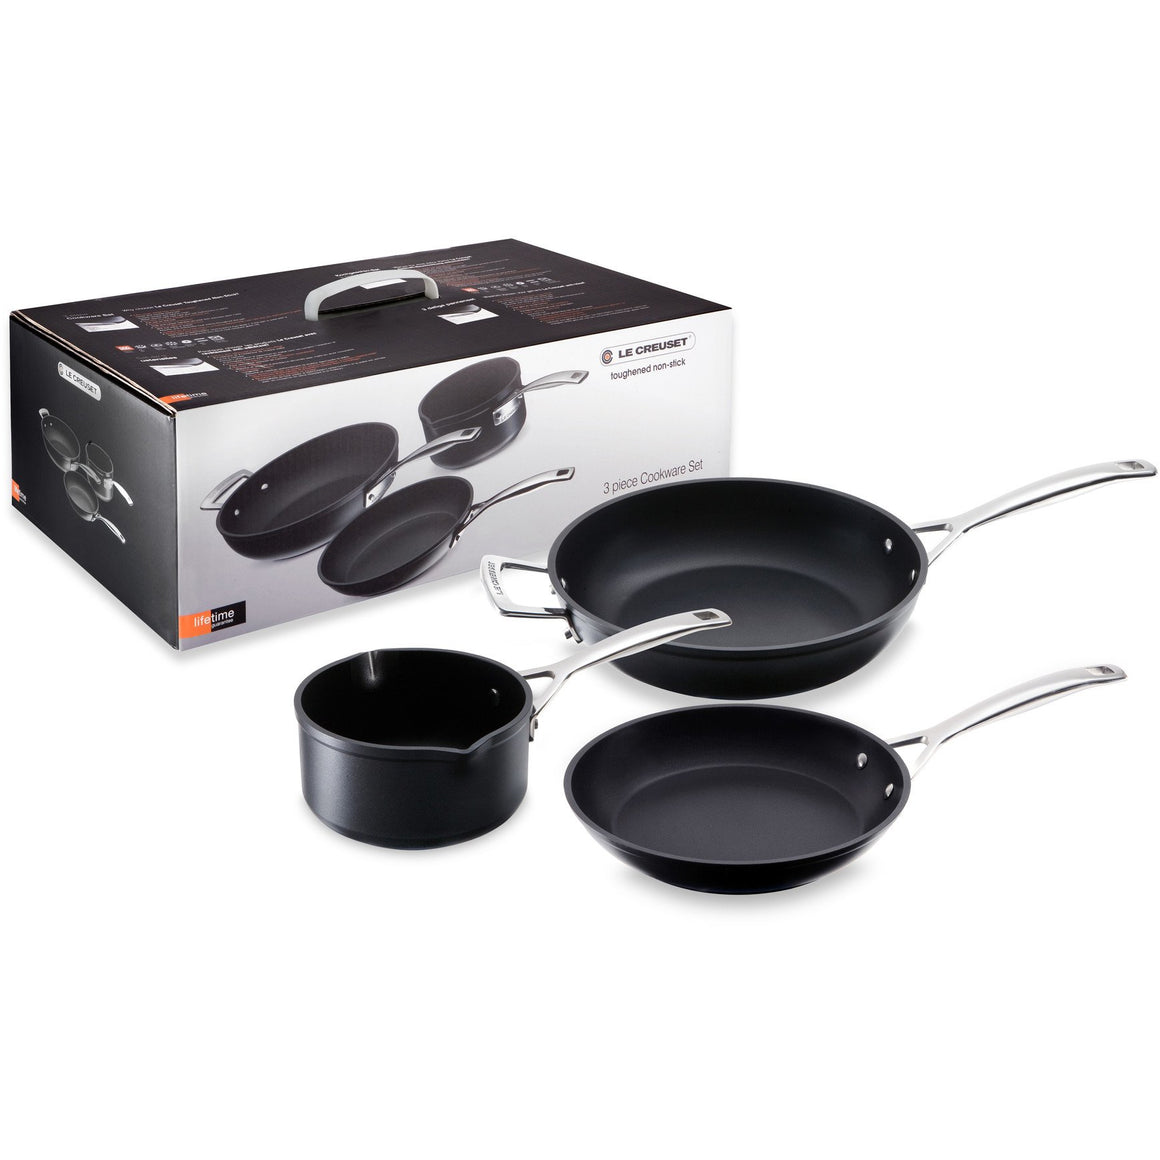 Le Creuset TNS 3 Piece Cookware Set